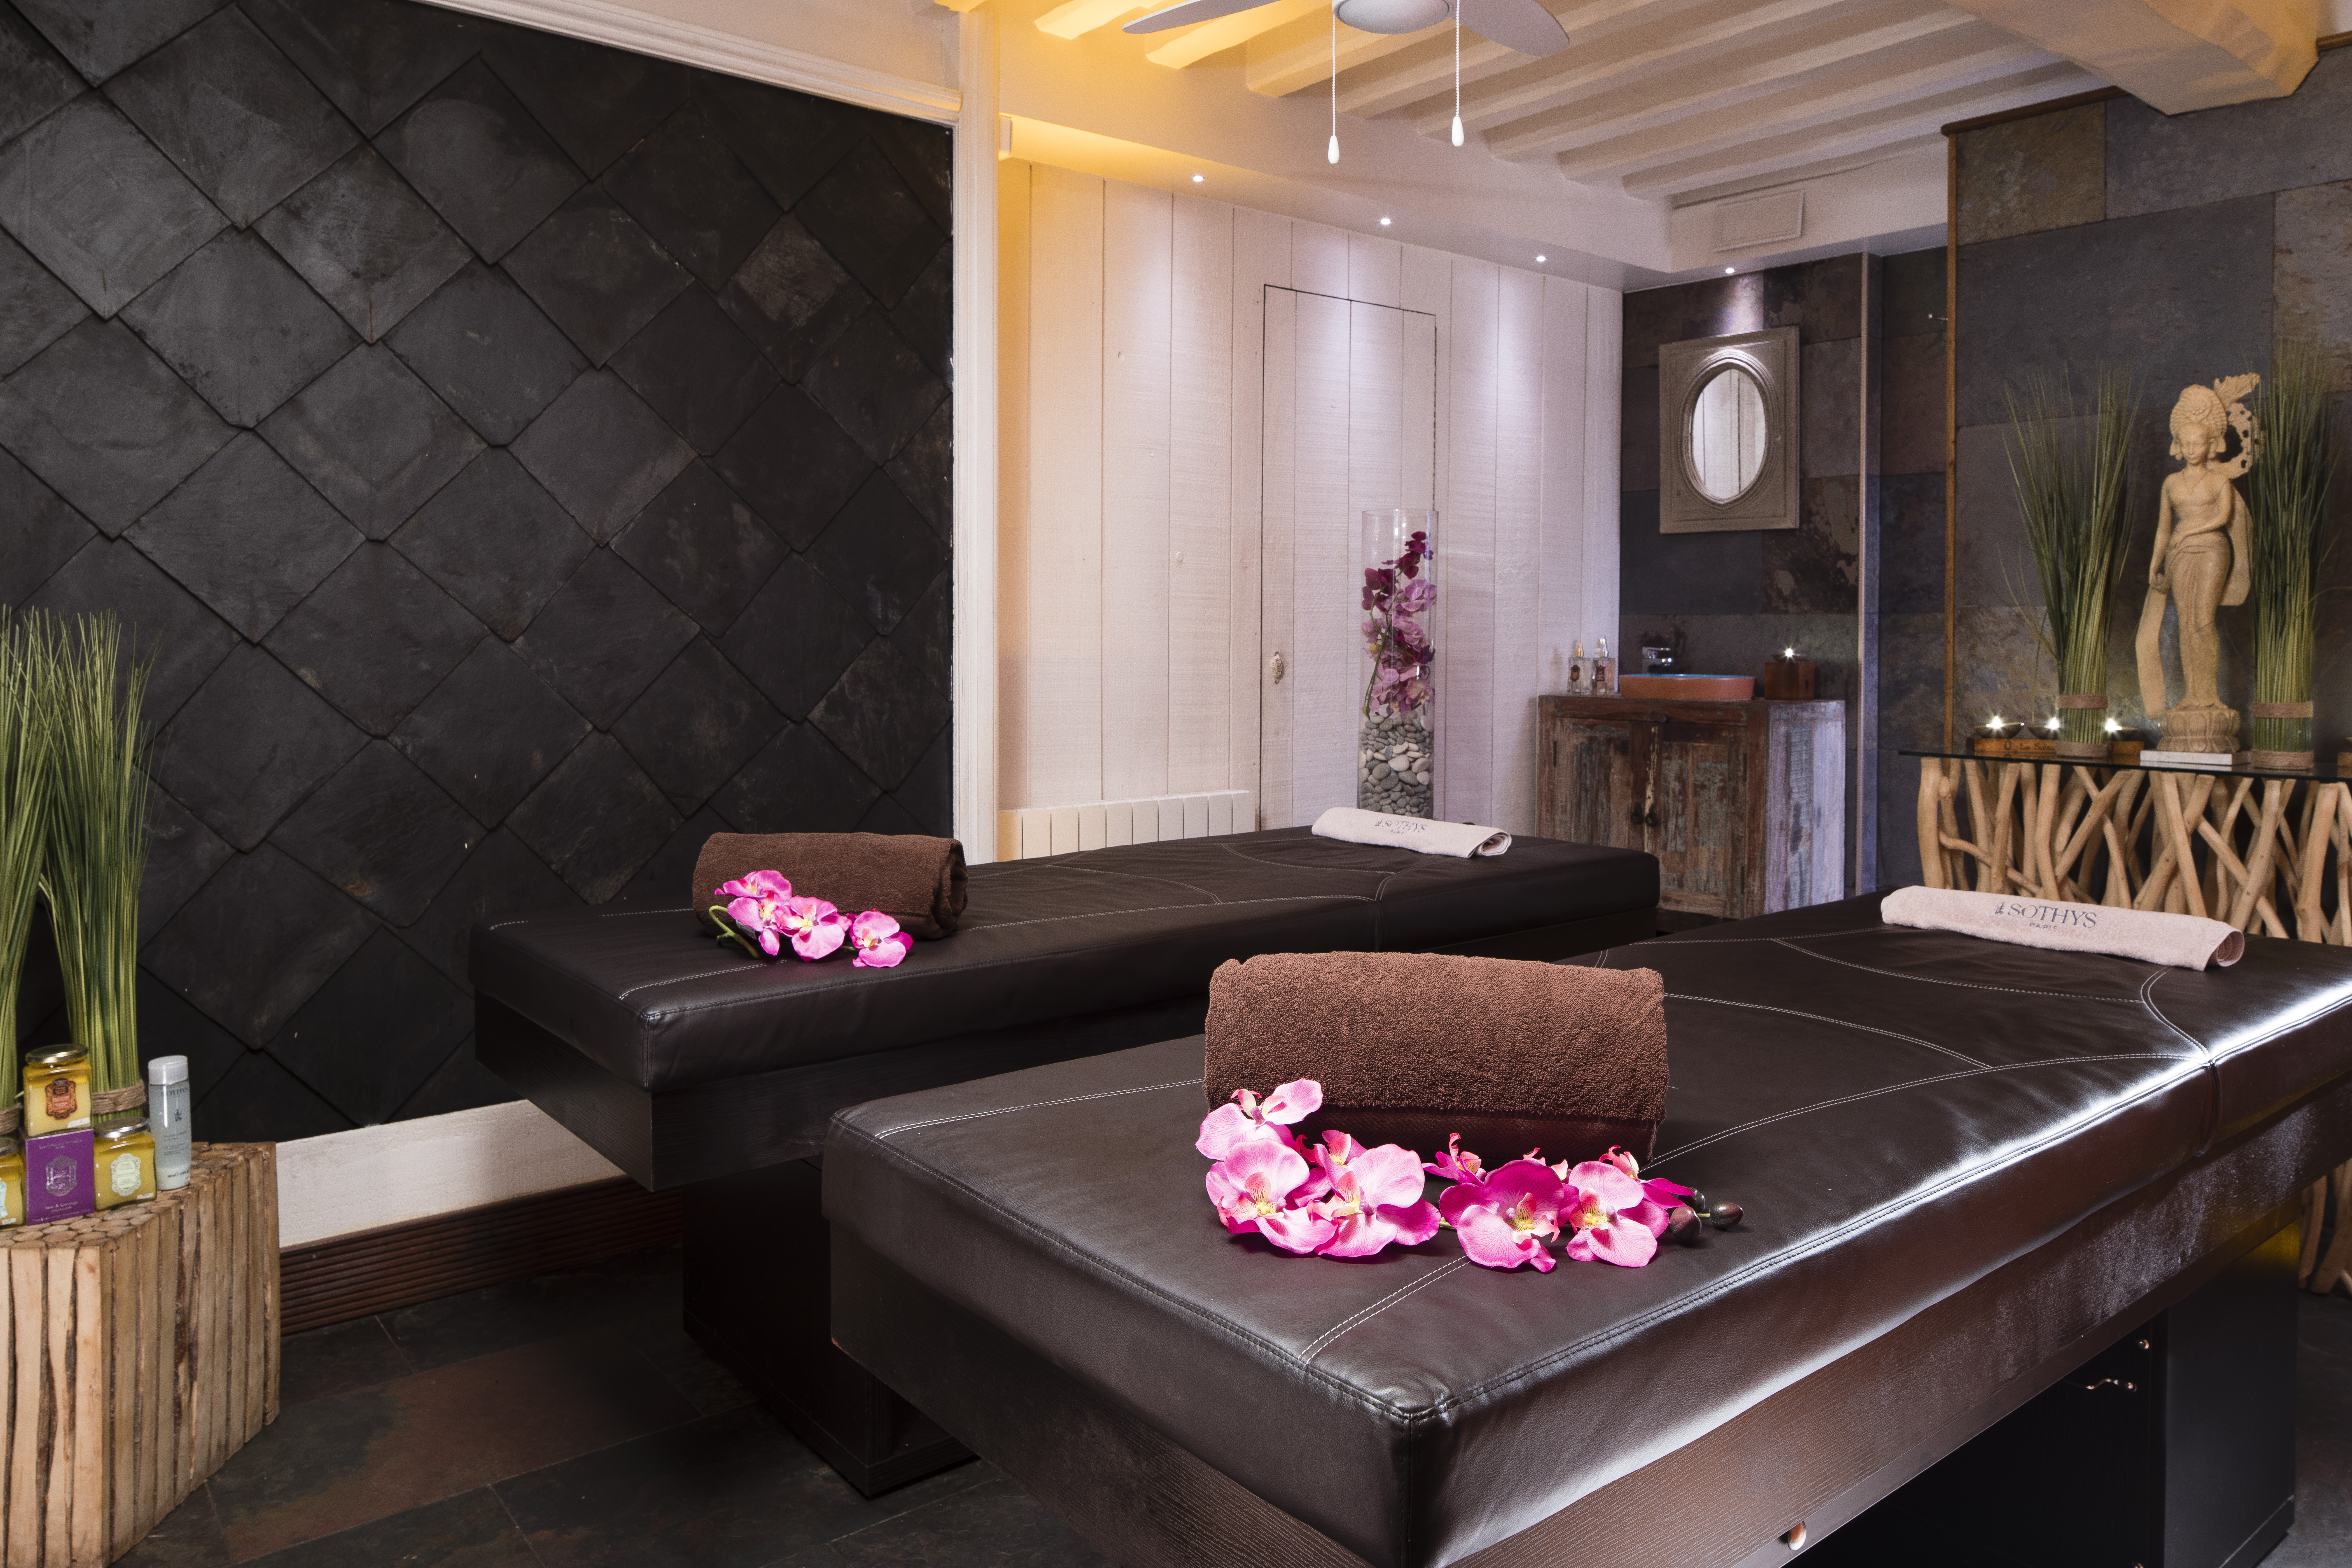 19/Spa/Tables_Massage_Spa_Le-Lion_dor_Hotel_Pont_leveque_HD.jpg